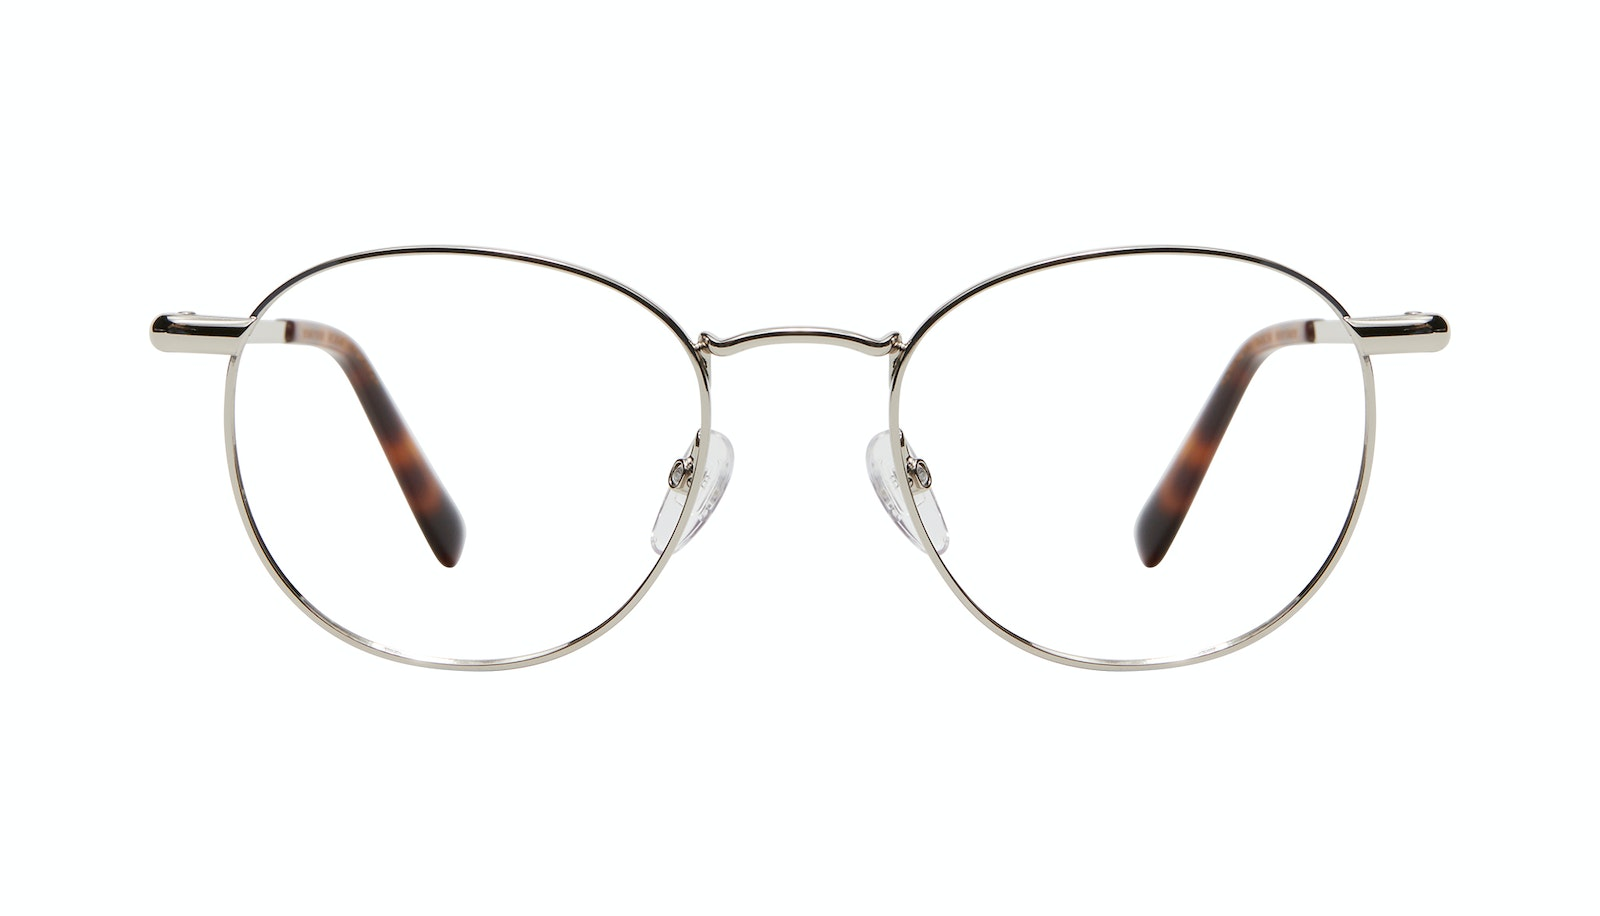 Affordable Fashion Glasses Round Eyeglasses Women Divine L Silver